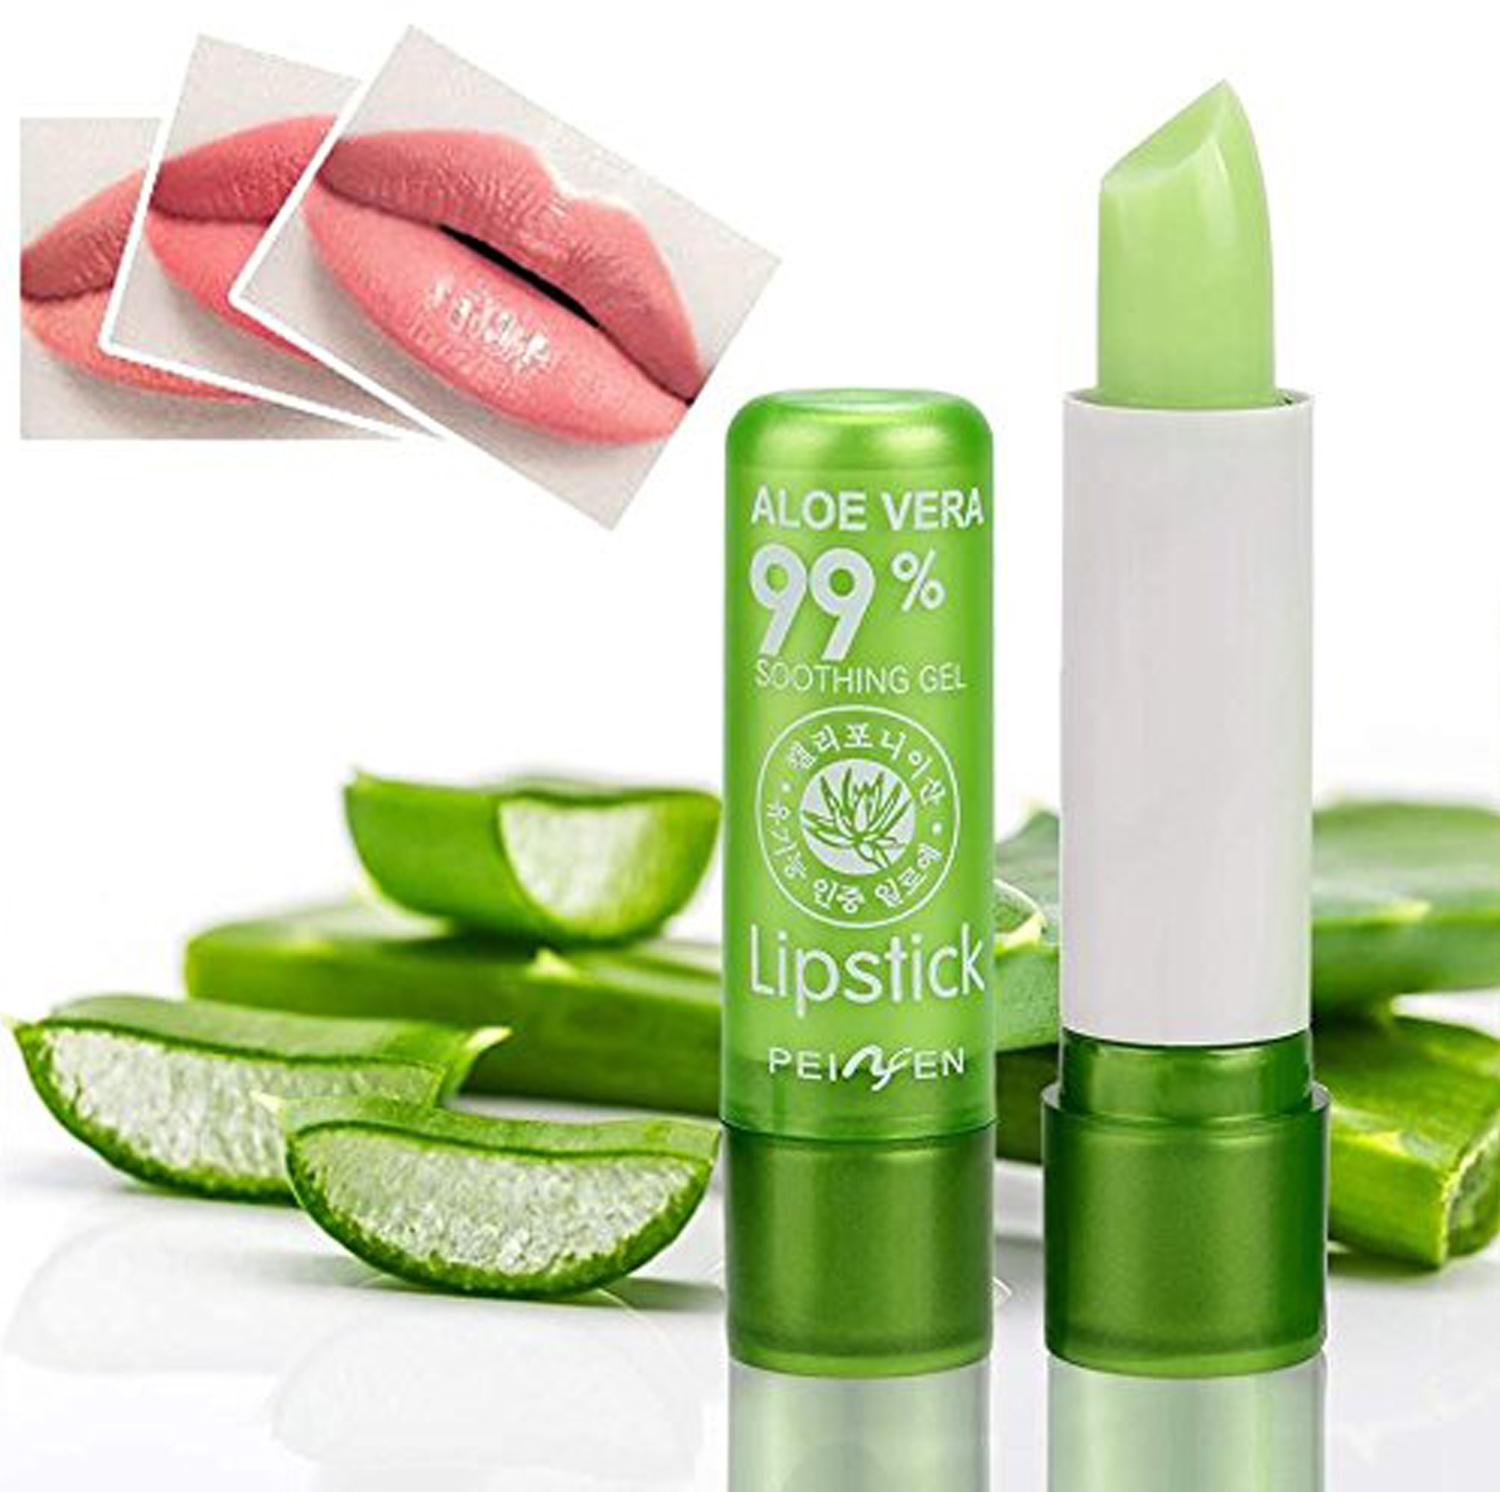 Aloe Vera Long Lasting Moisturizing Lipstick Tint Aloe Gel Philippines